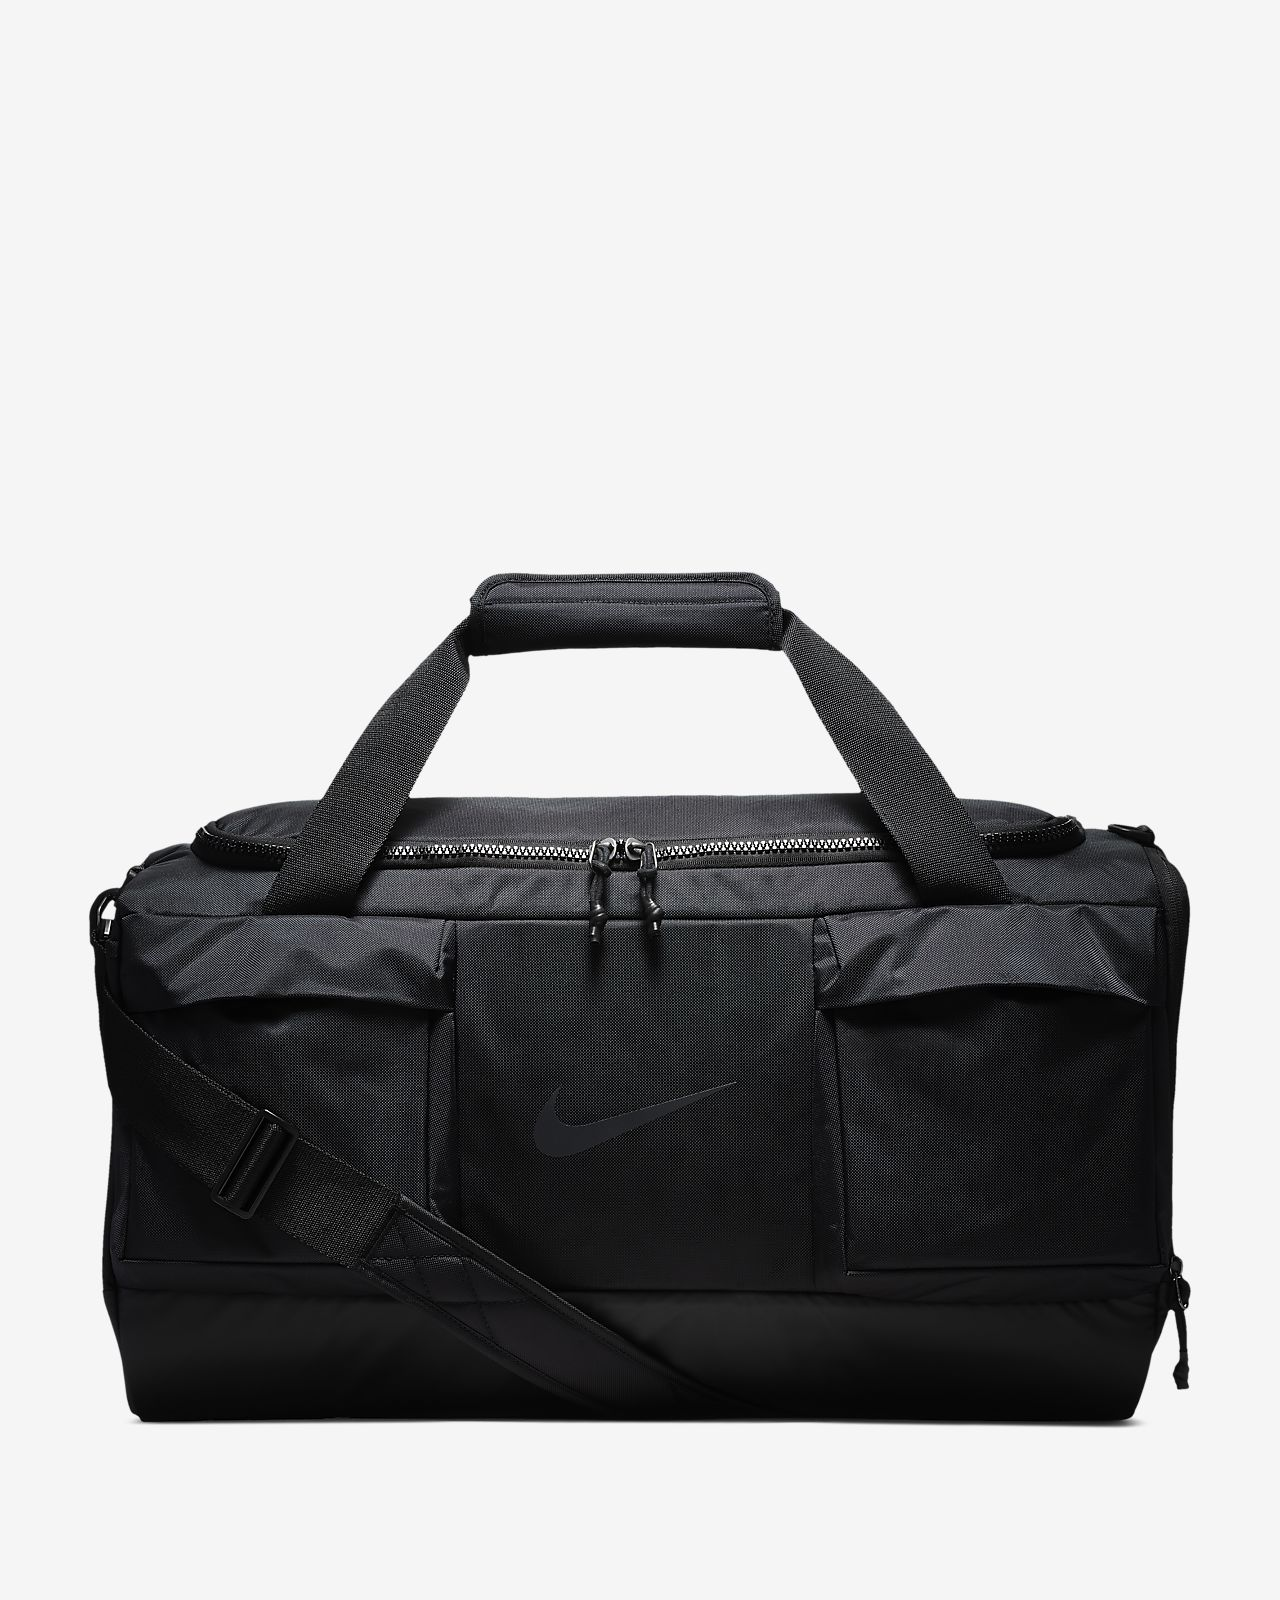 06030ab46a Nike Vapor Power Men s Training Duffel Bag (Medium). Nike.com